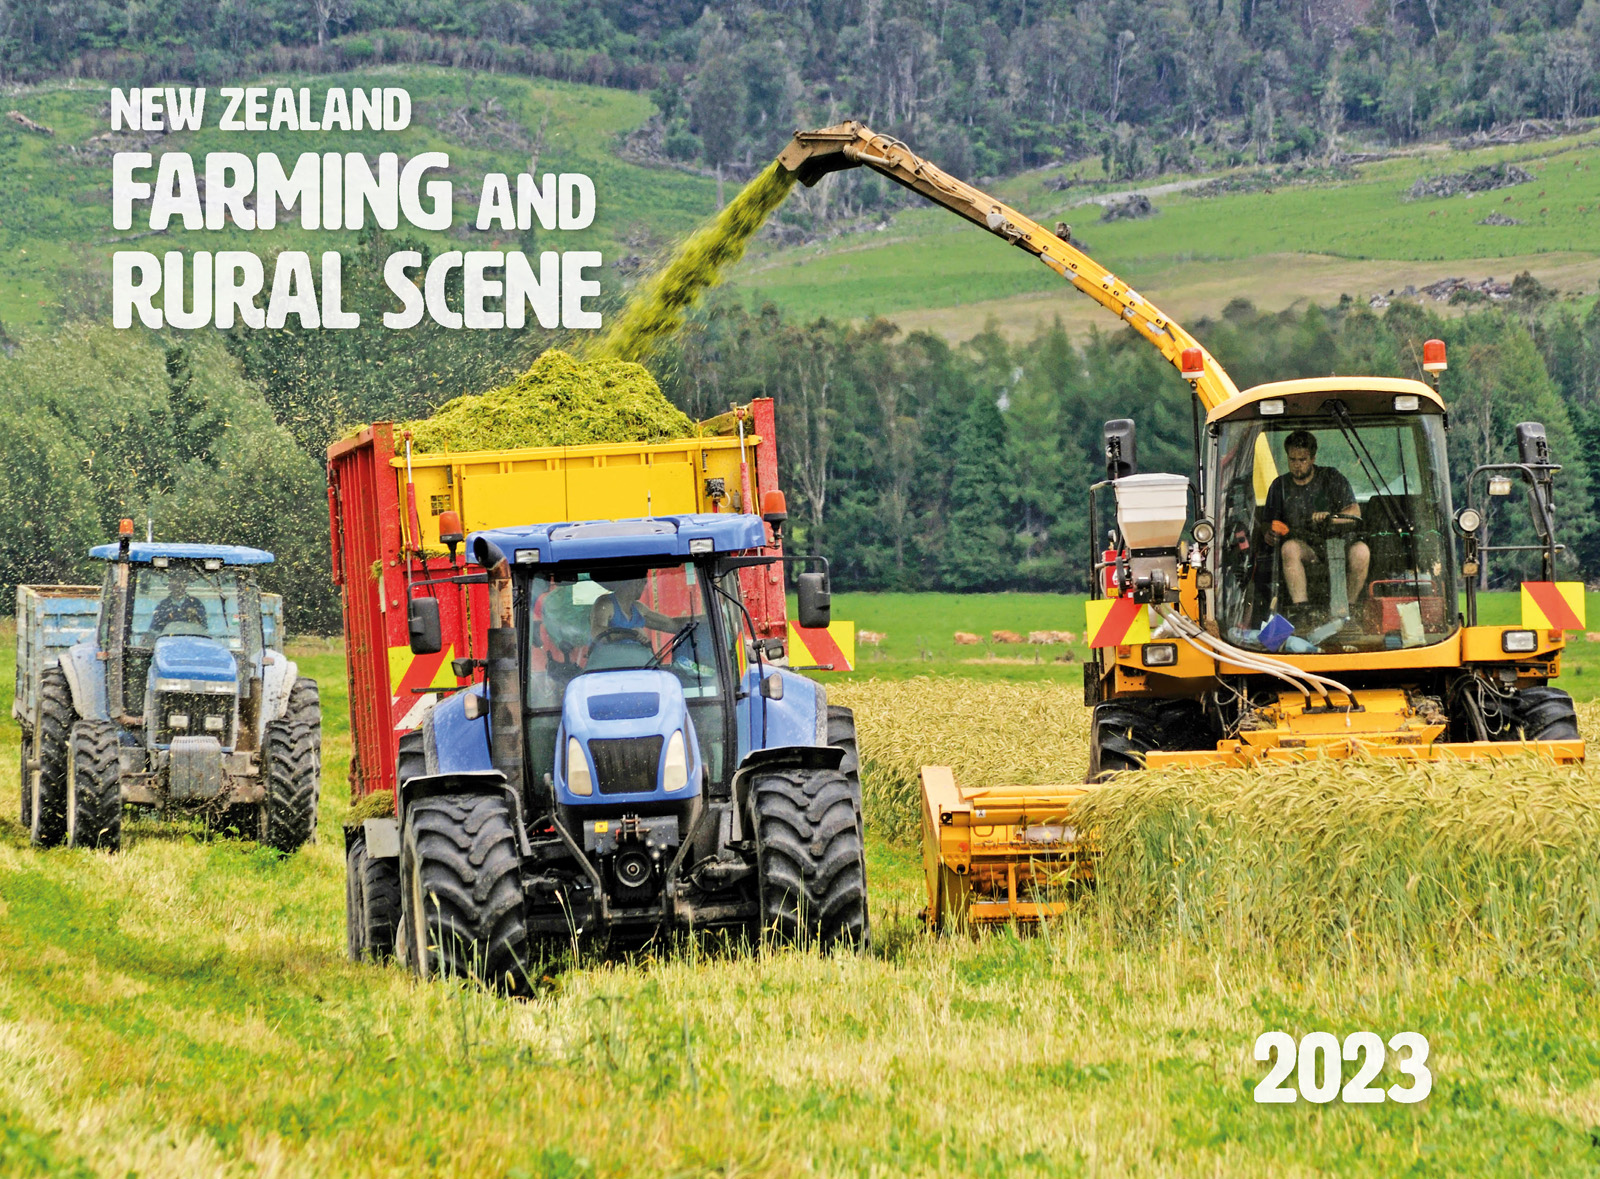 New Zealand Farming and Rural Scene 2021